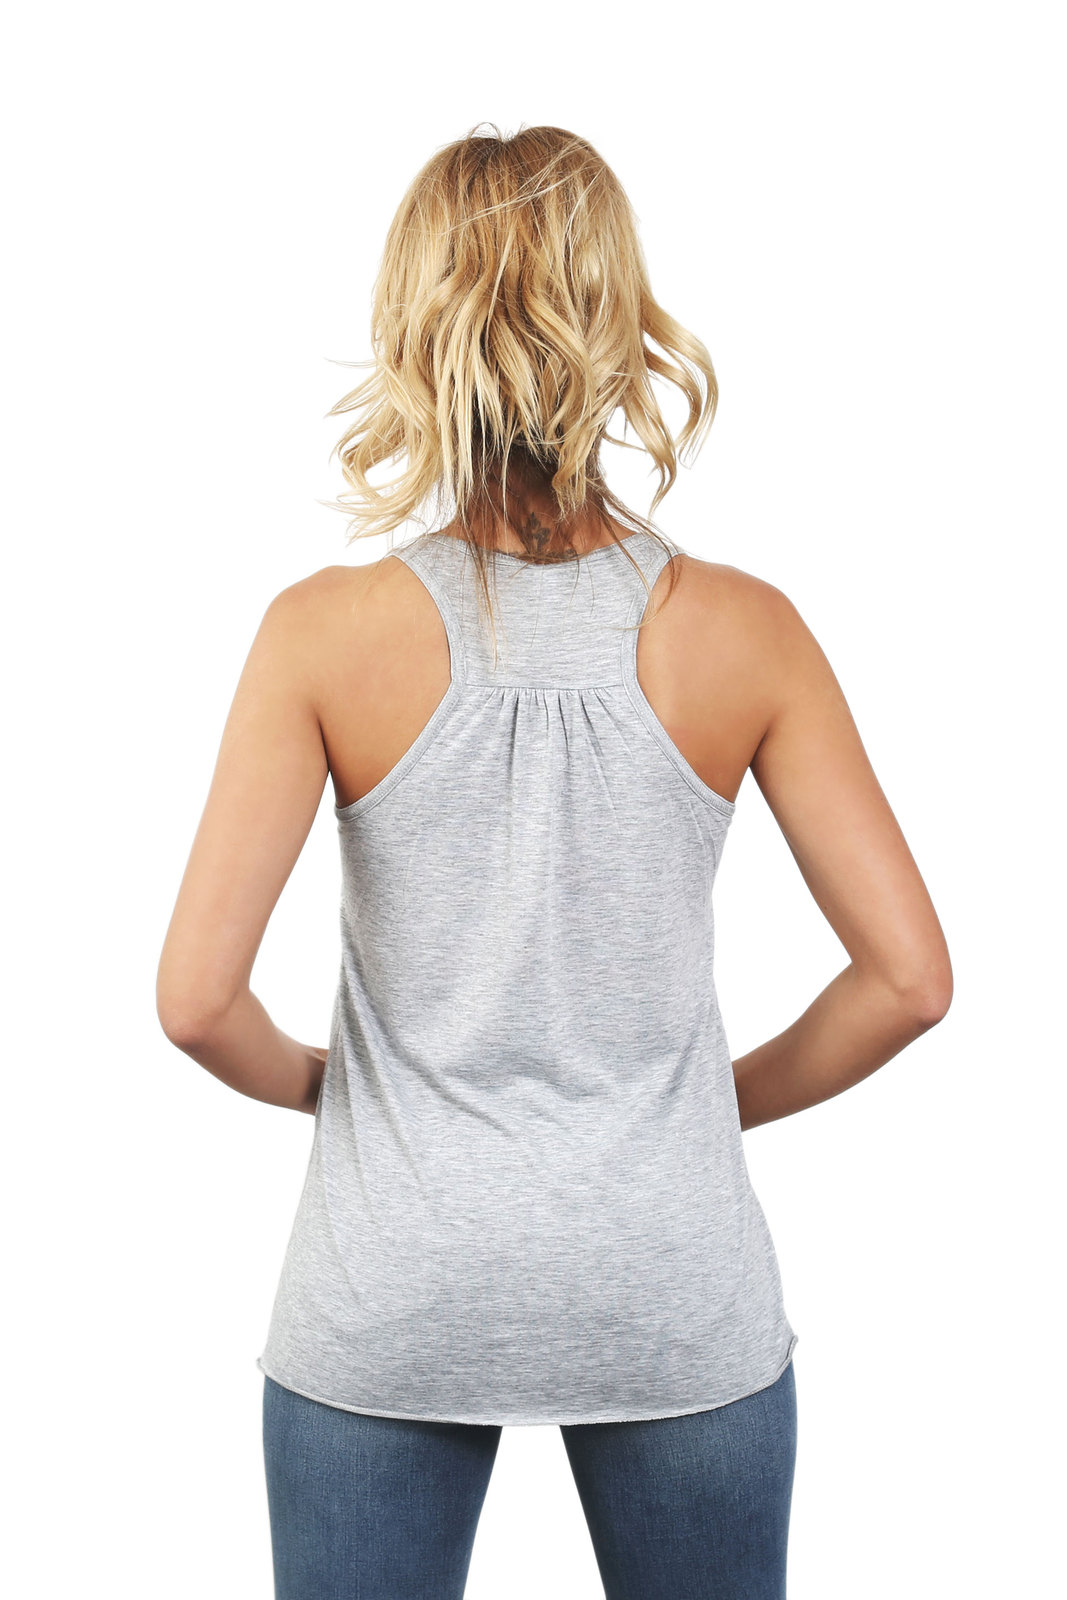 Thread Tank Mom Squad Women's Sleeveless Flowy Racerback Tank Top Sport Grey